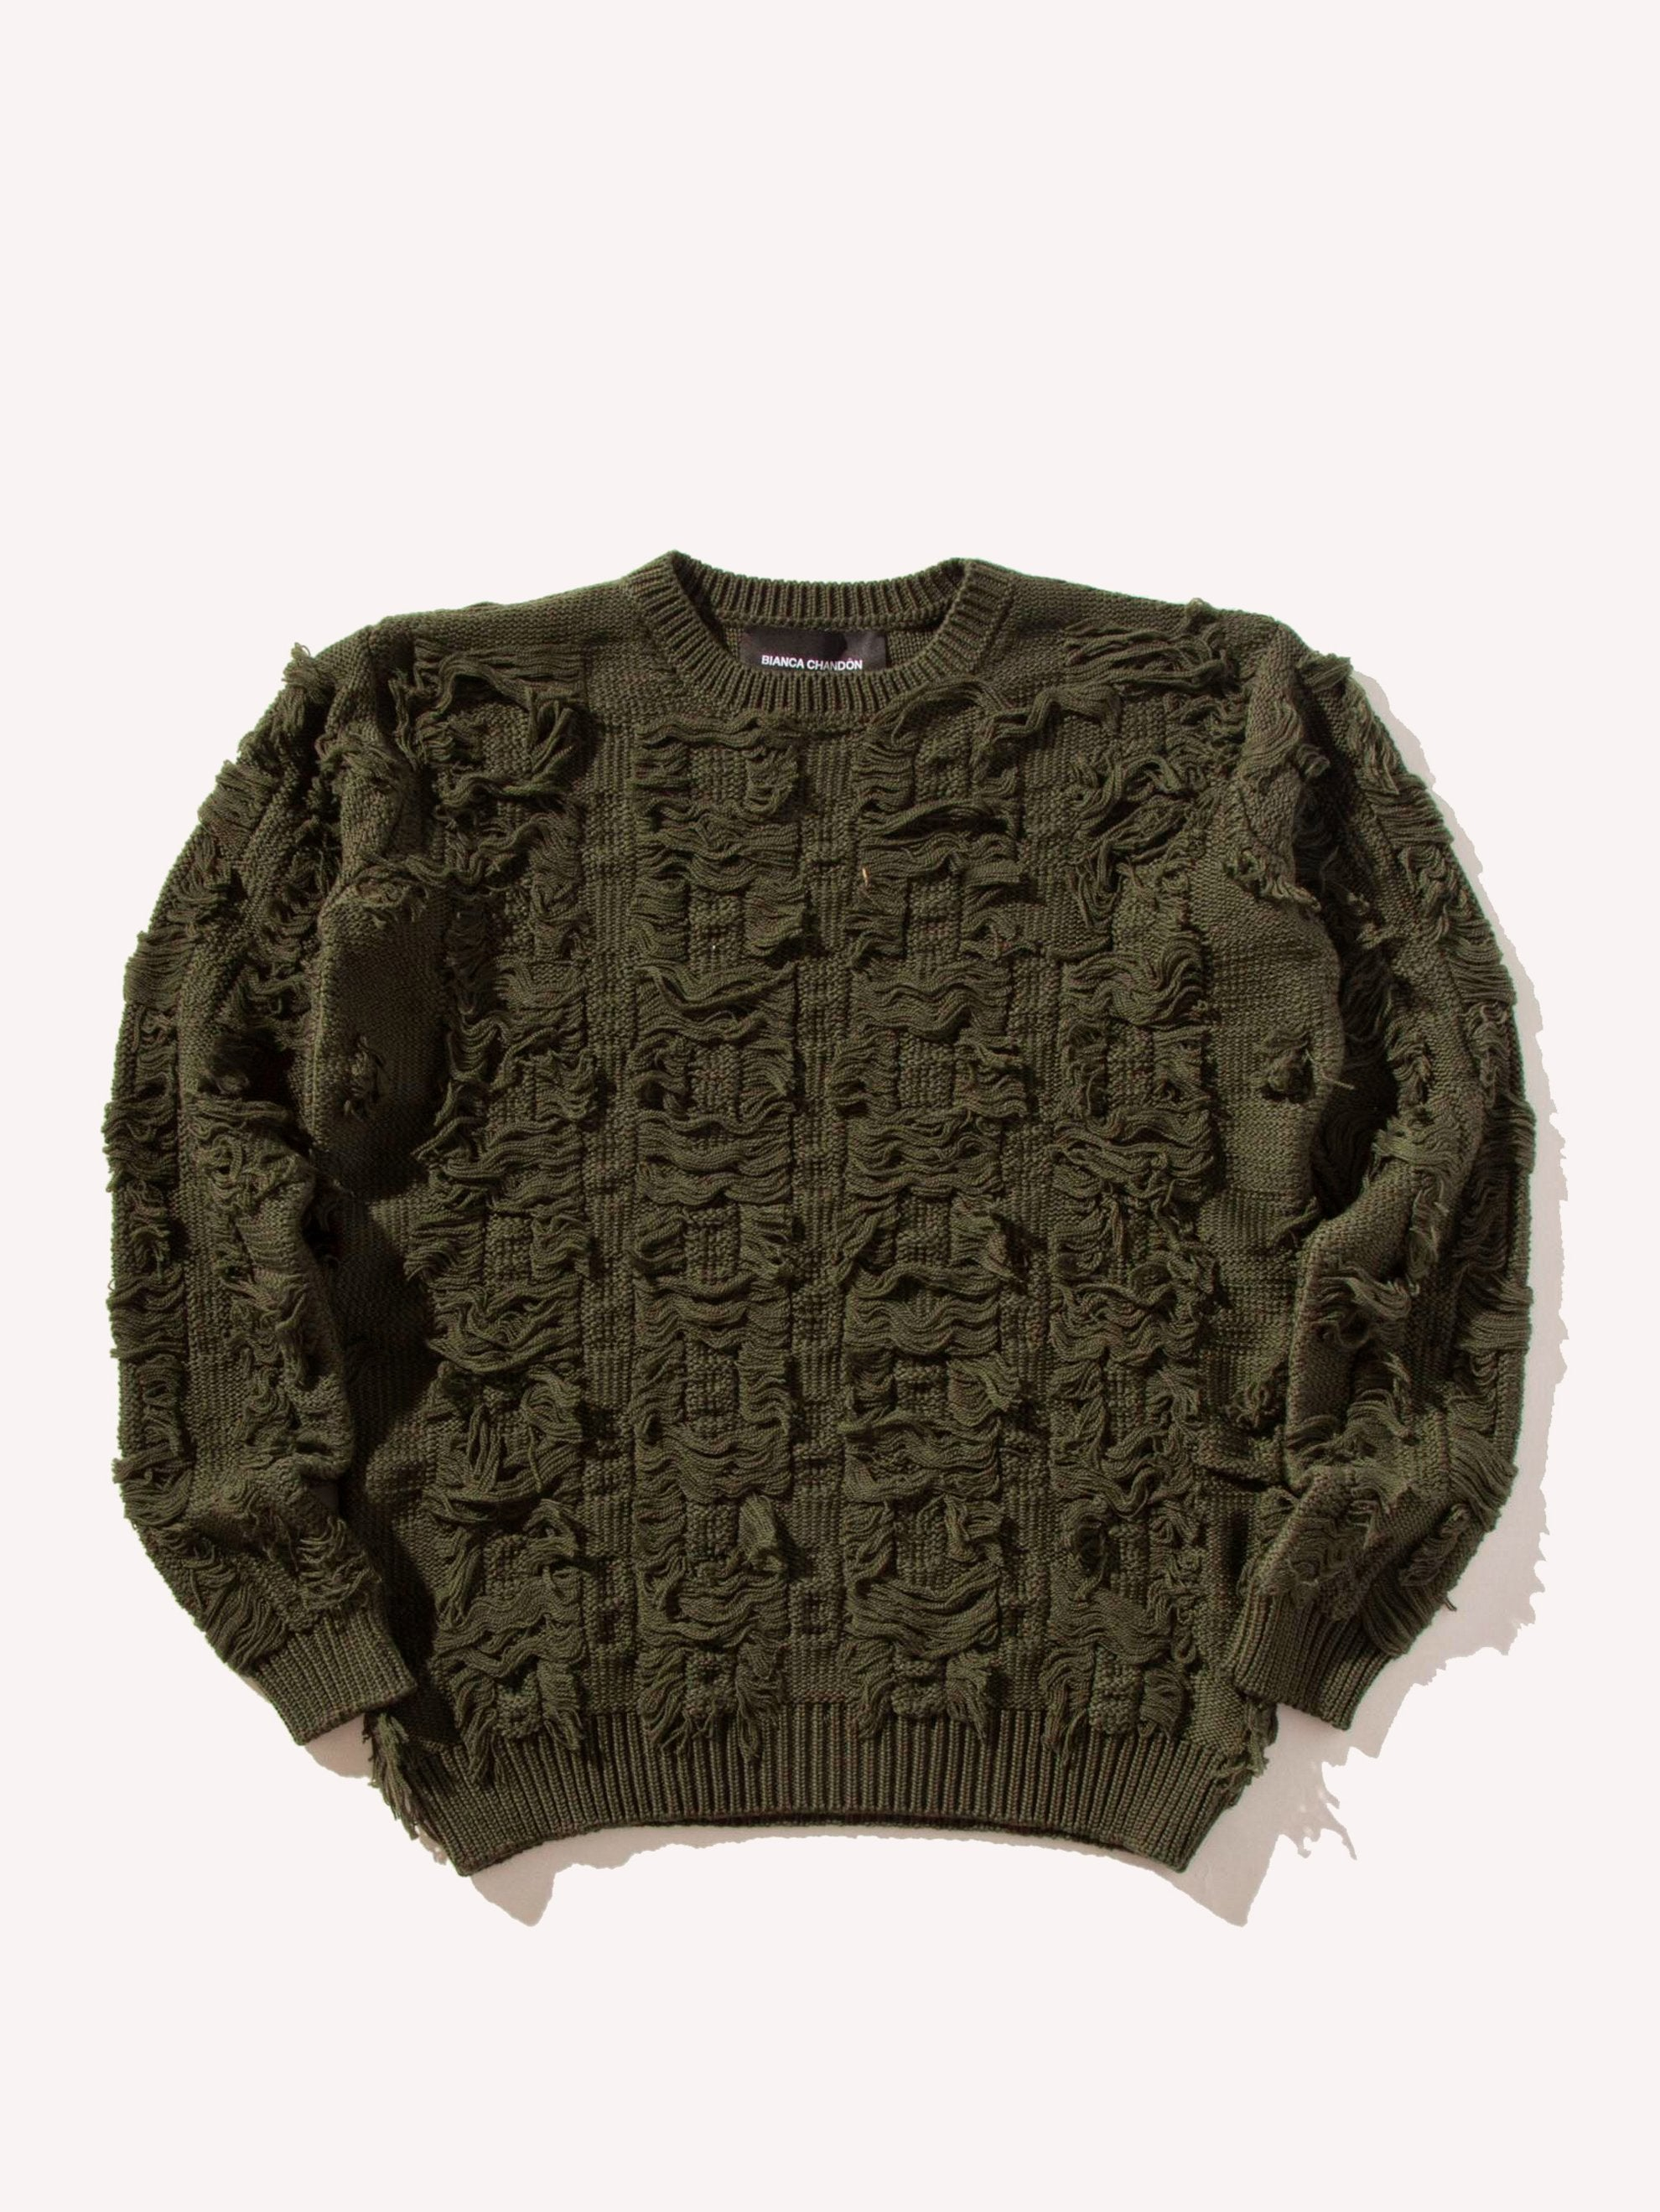 Cut Float Jacquard Sweater